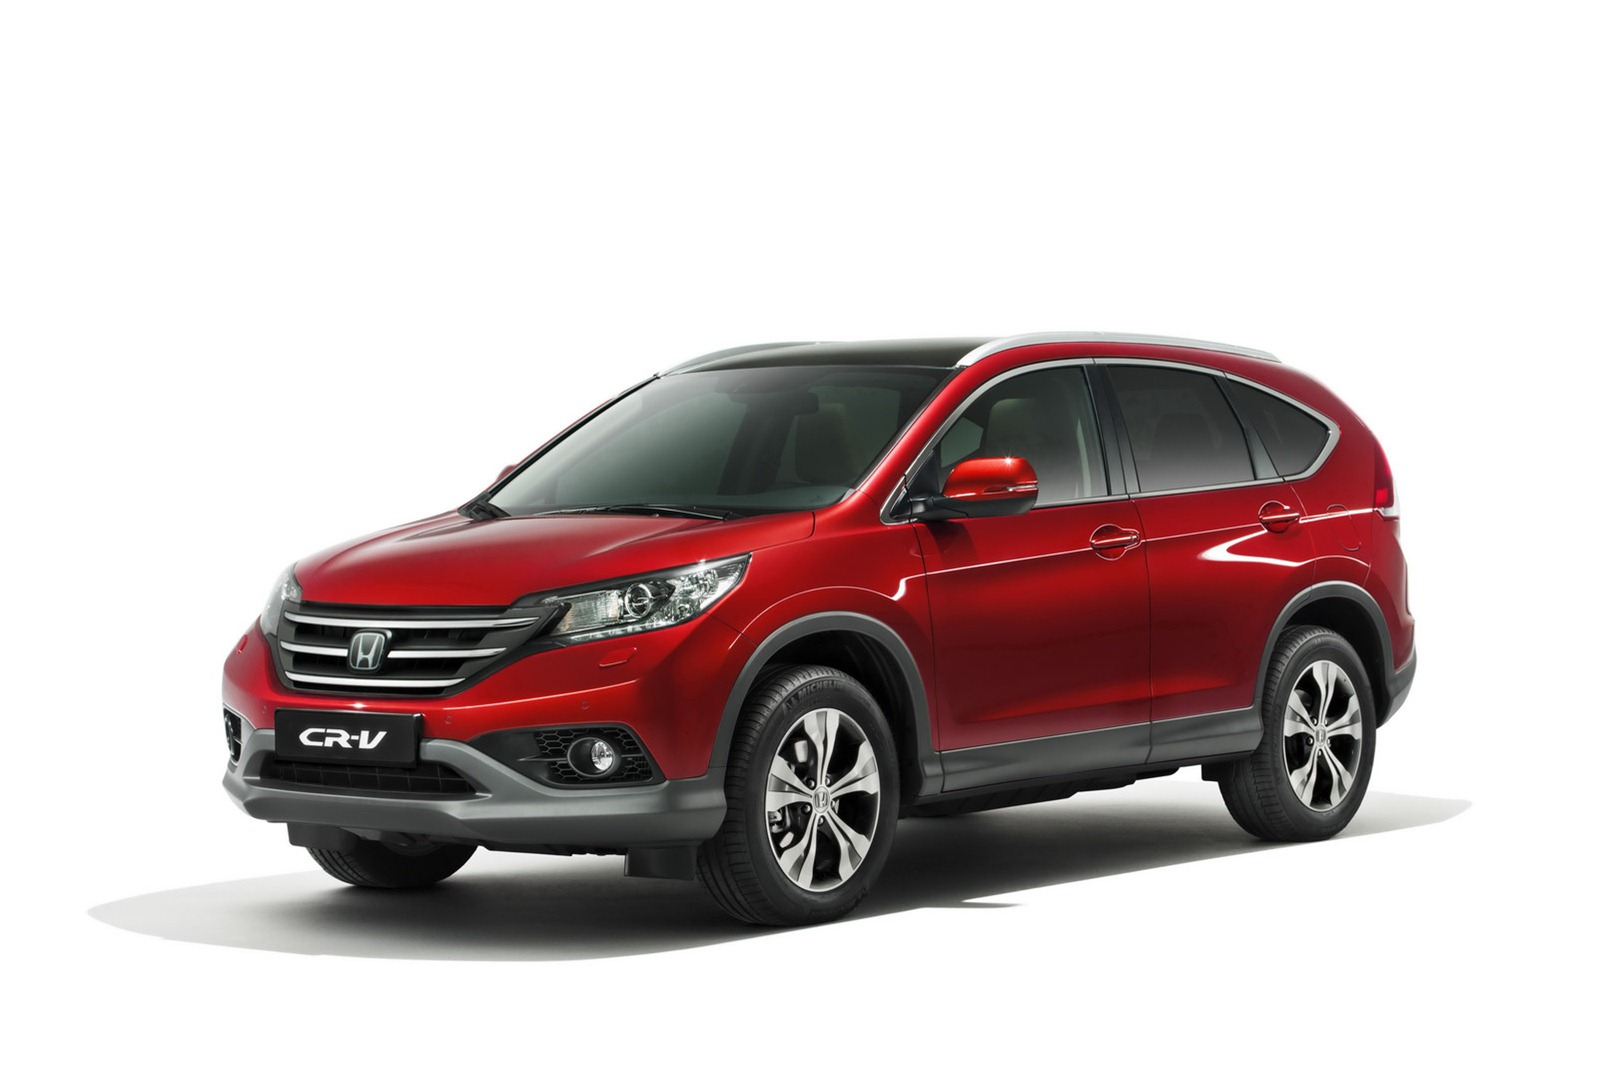 Honda Cr V 1 6l Diesel Launch Next Year May Be Priced At